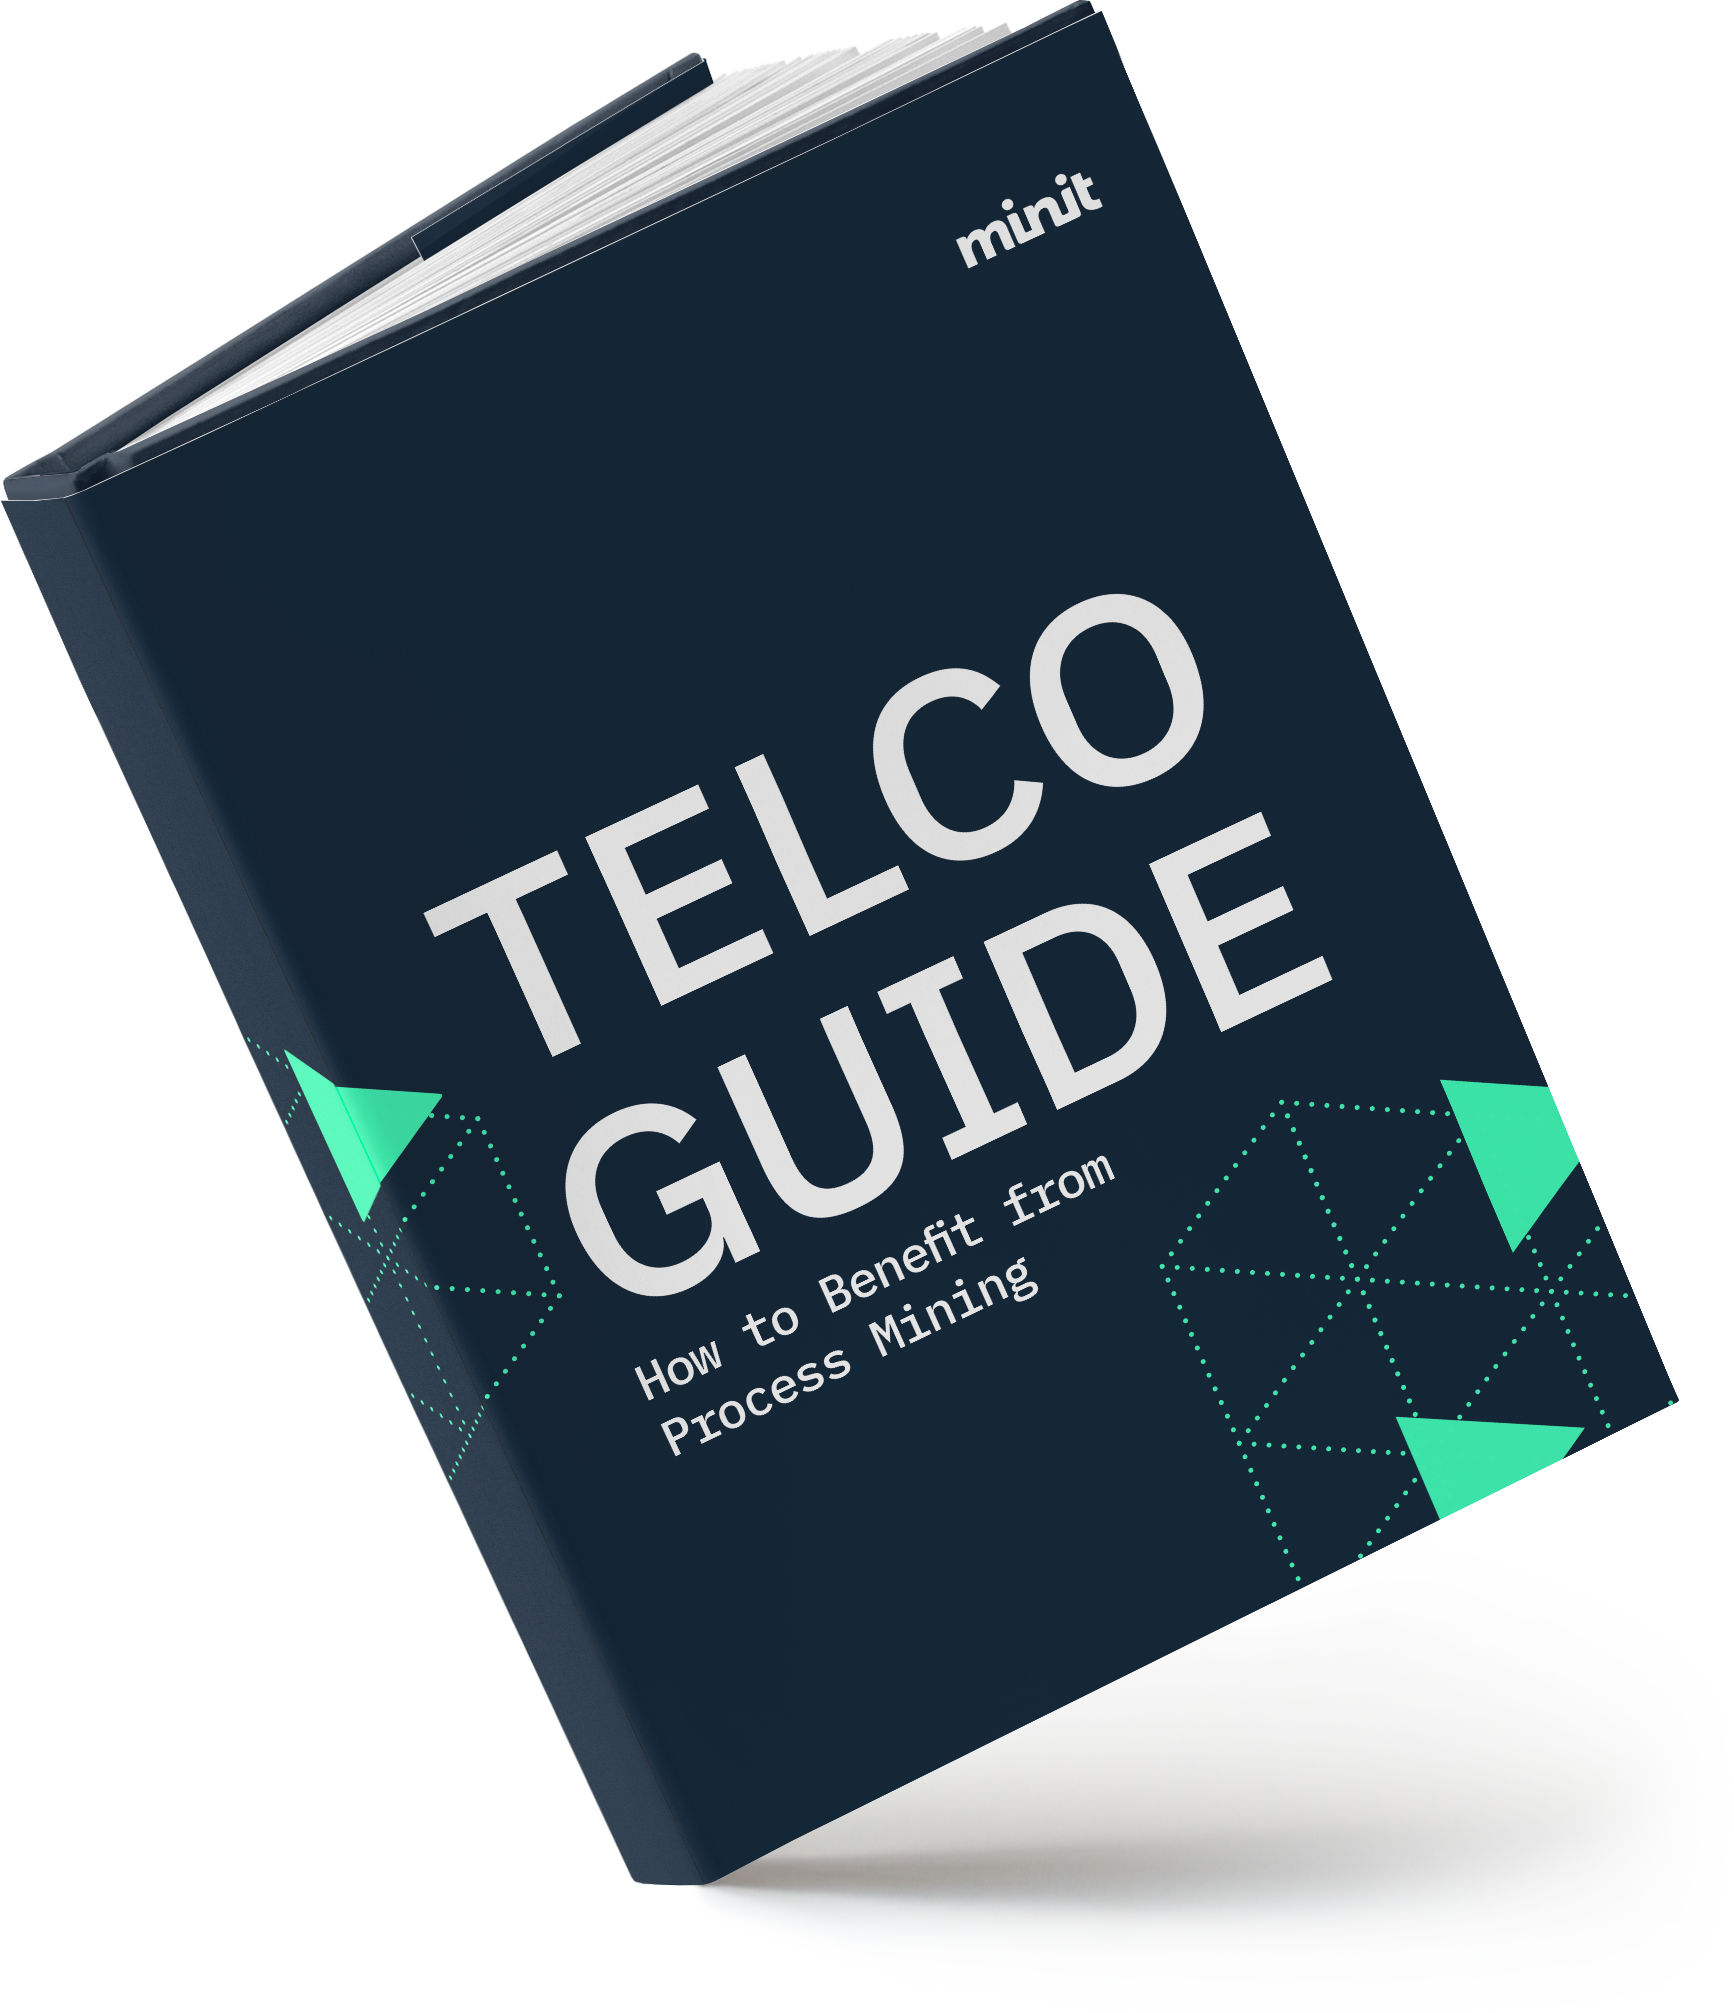 minit-free-telco-guide-how-to-benefit-from-process-mining@3x